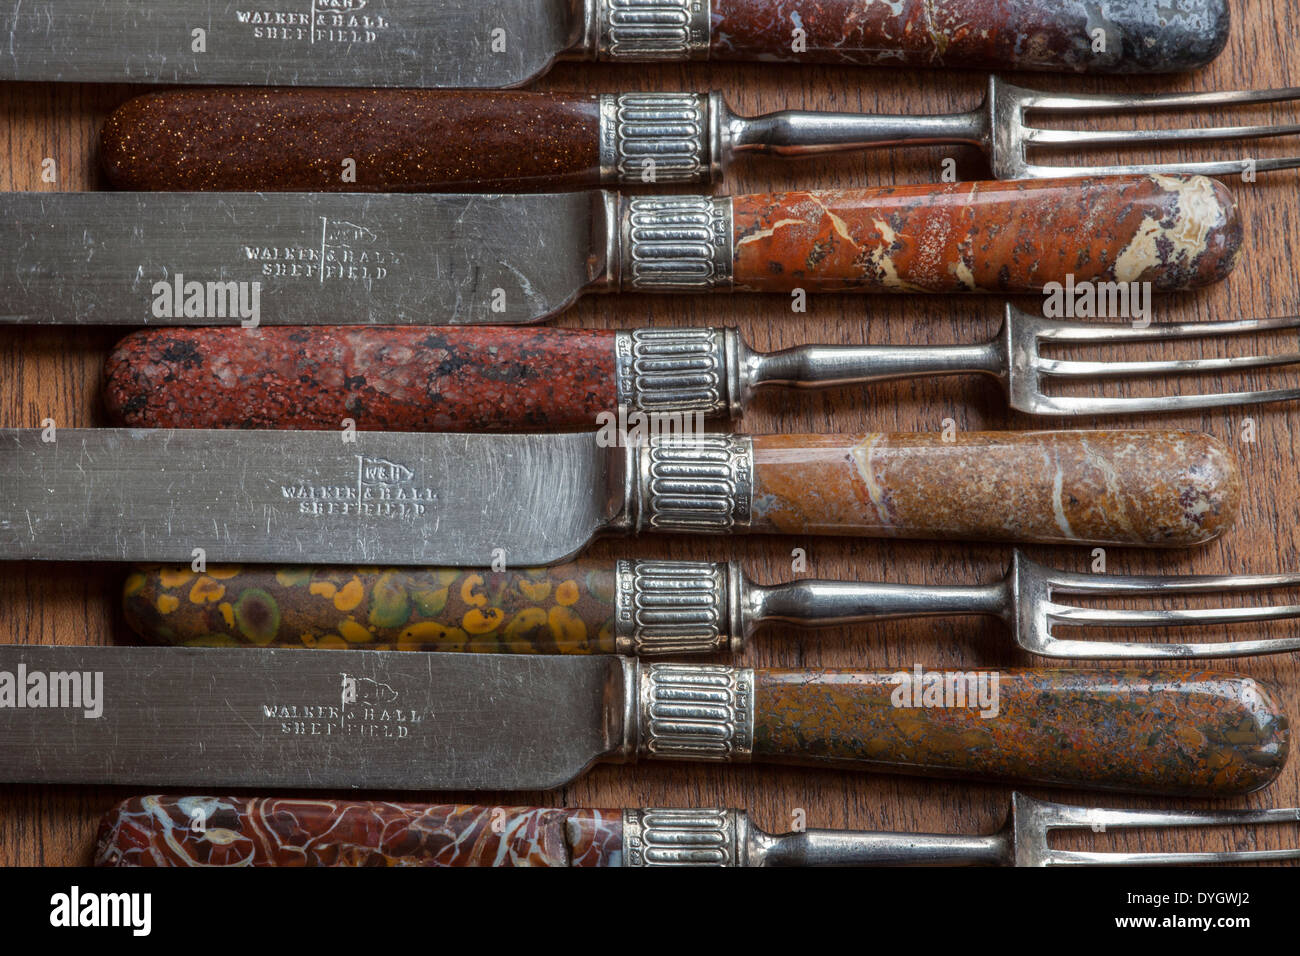 19th century stone handled knives and forks - Stock Image